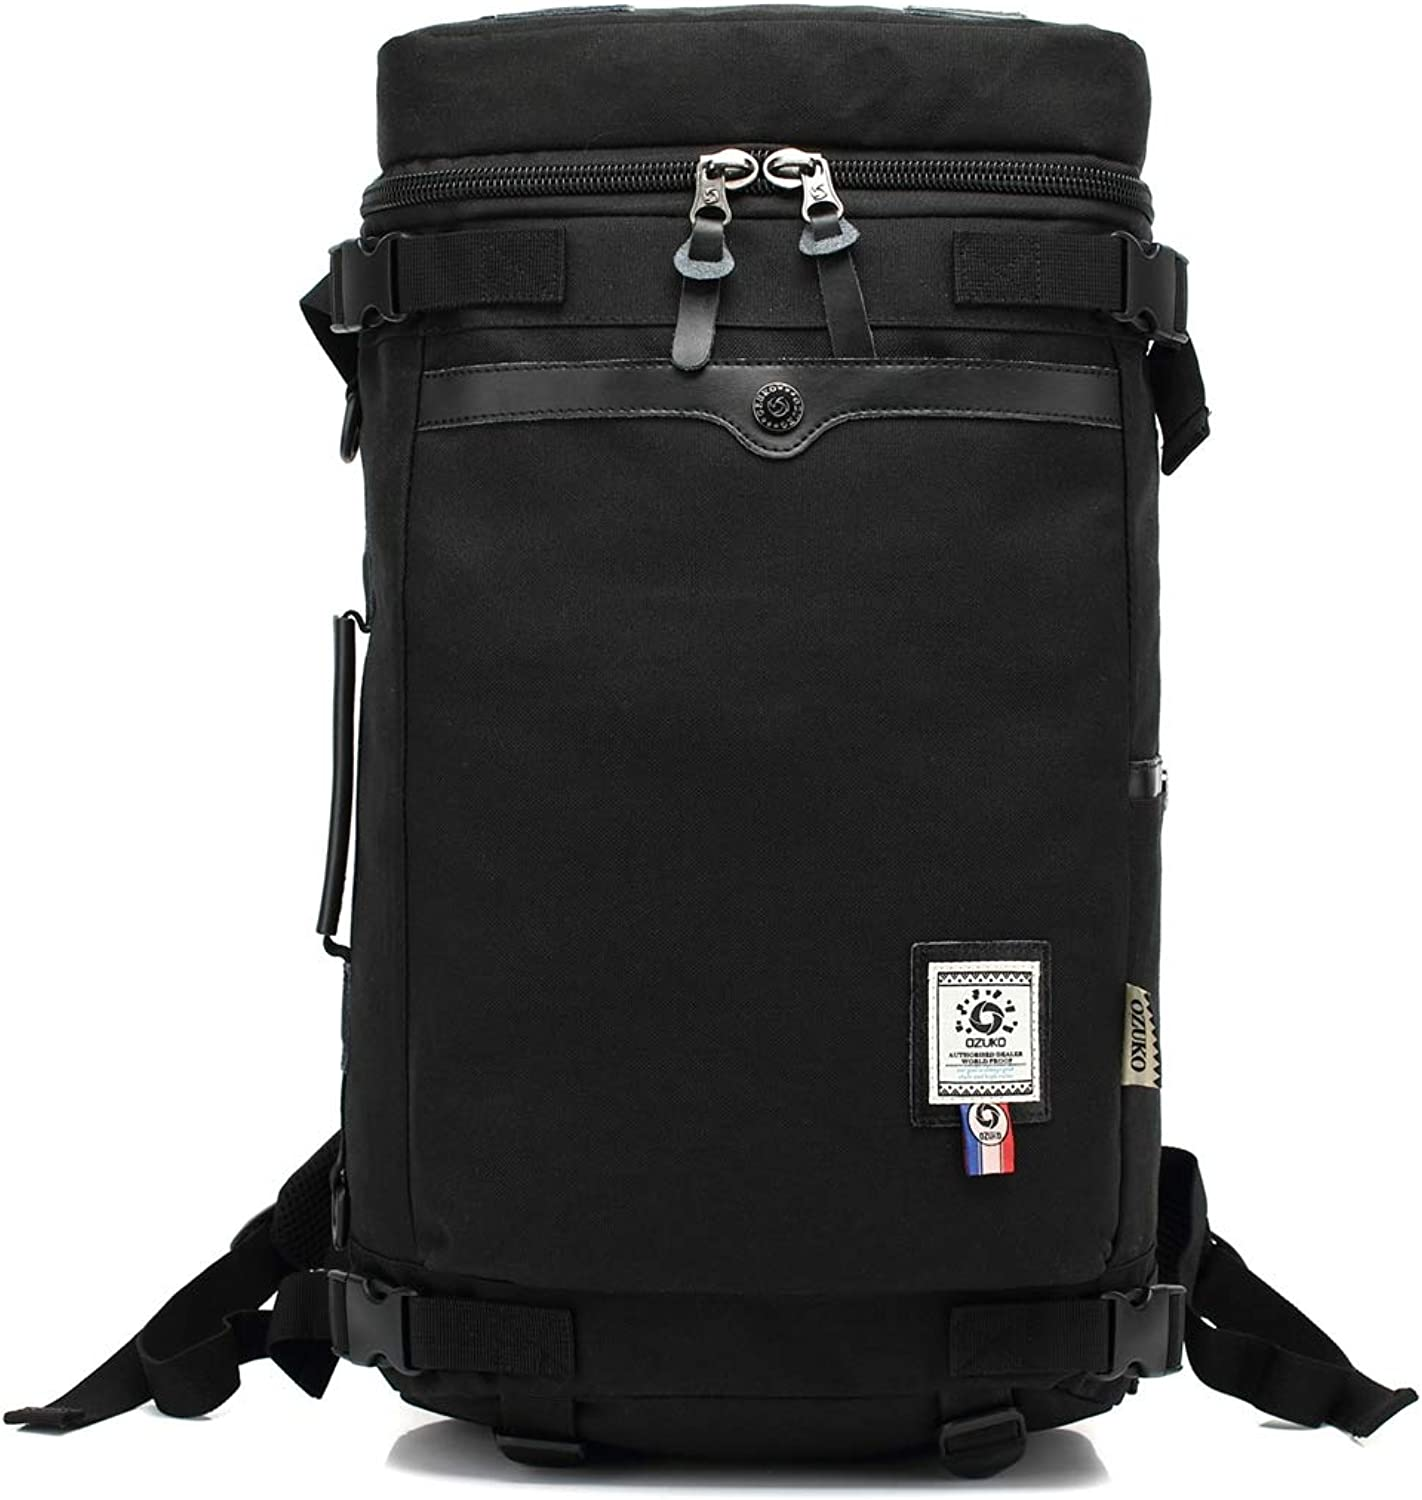 Fashion Travel Backpack MultiFunction Large Capacity Mountaineering Bag Casual Outdoor Handbag for Men 18 Inches